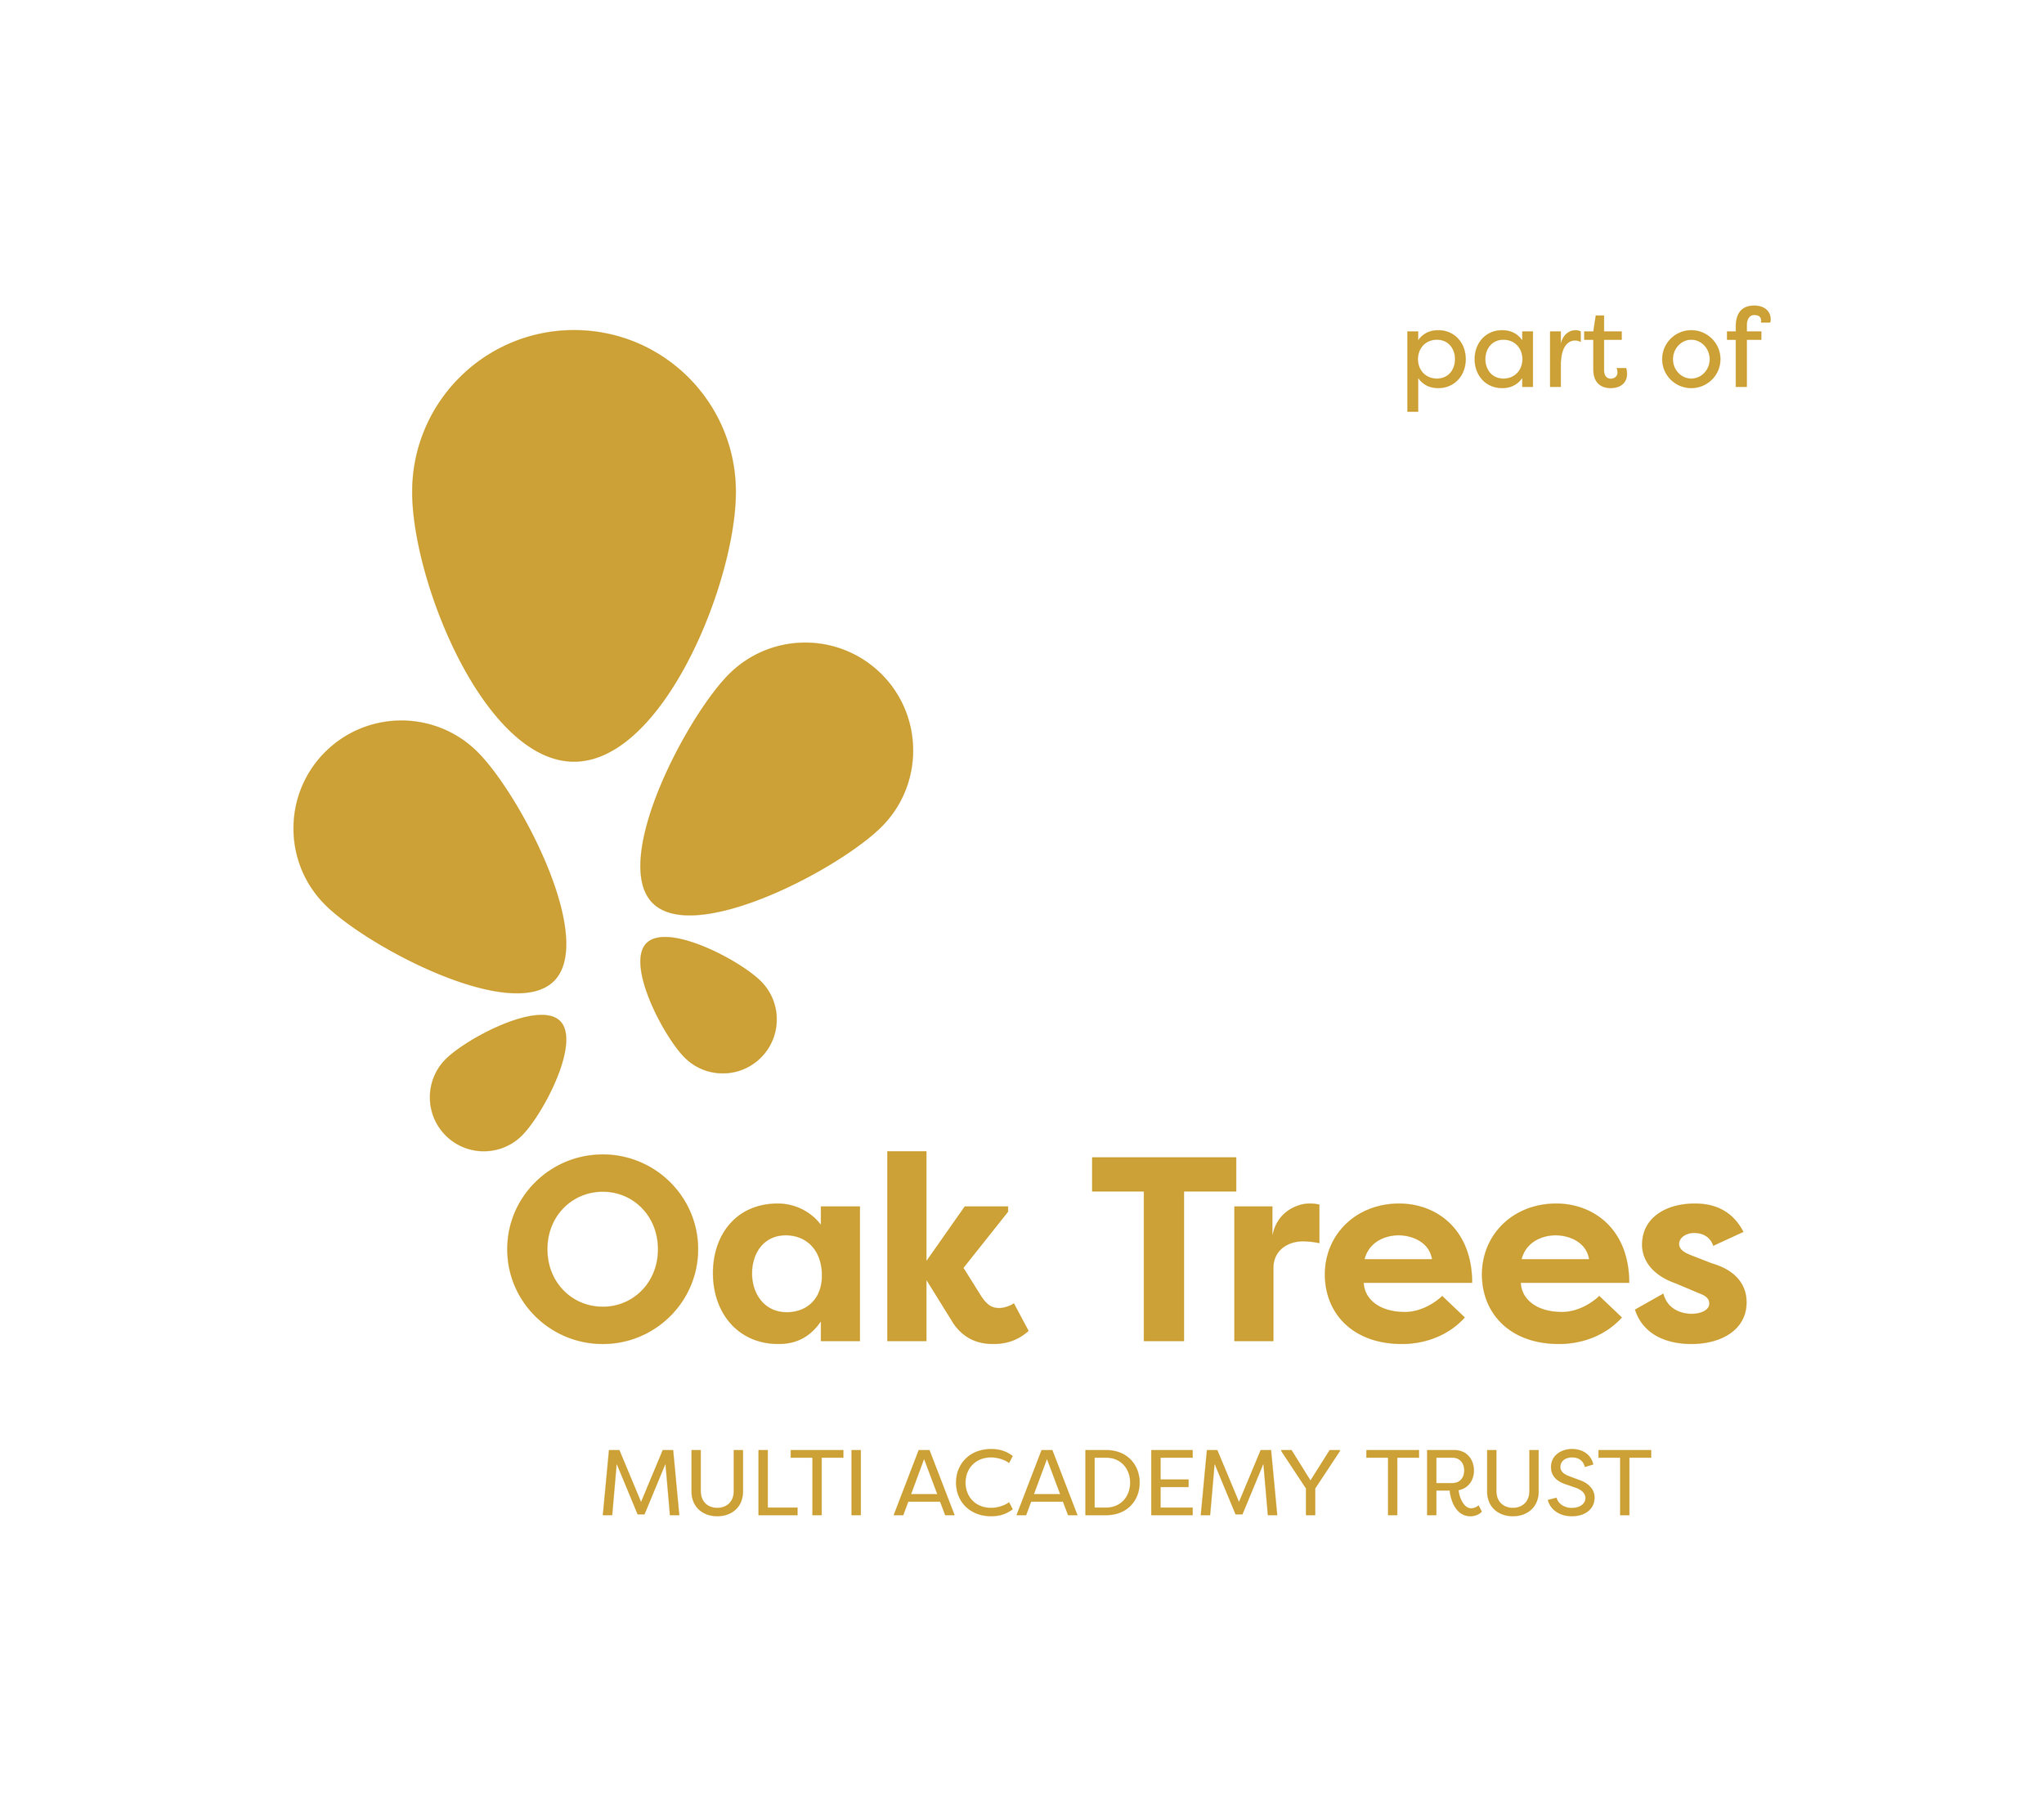 - Click on the link for the Oak Trees Multi Academy Trust website